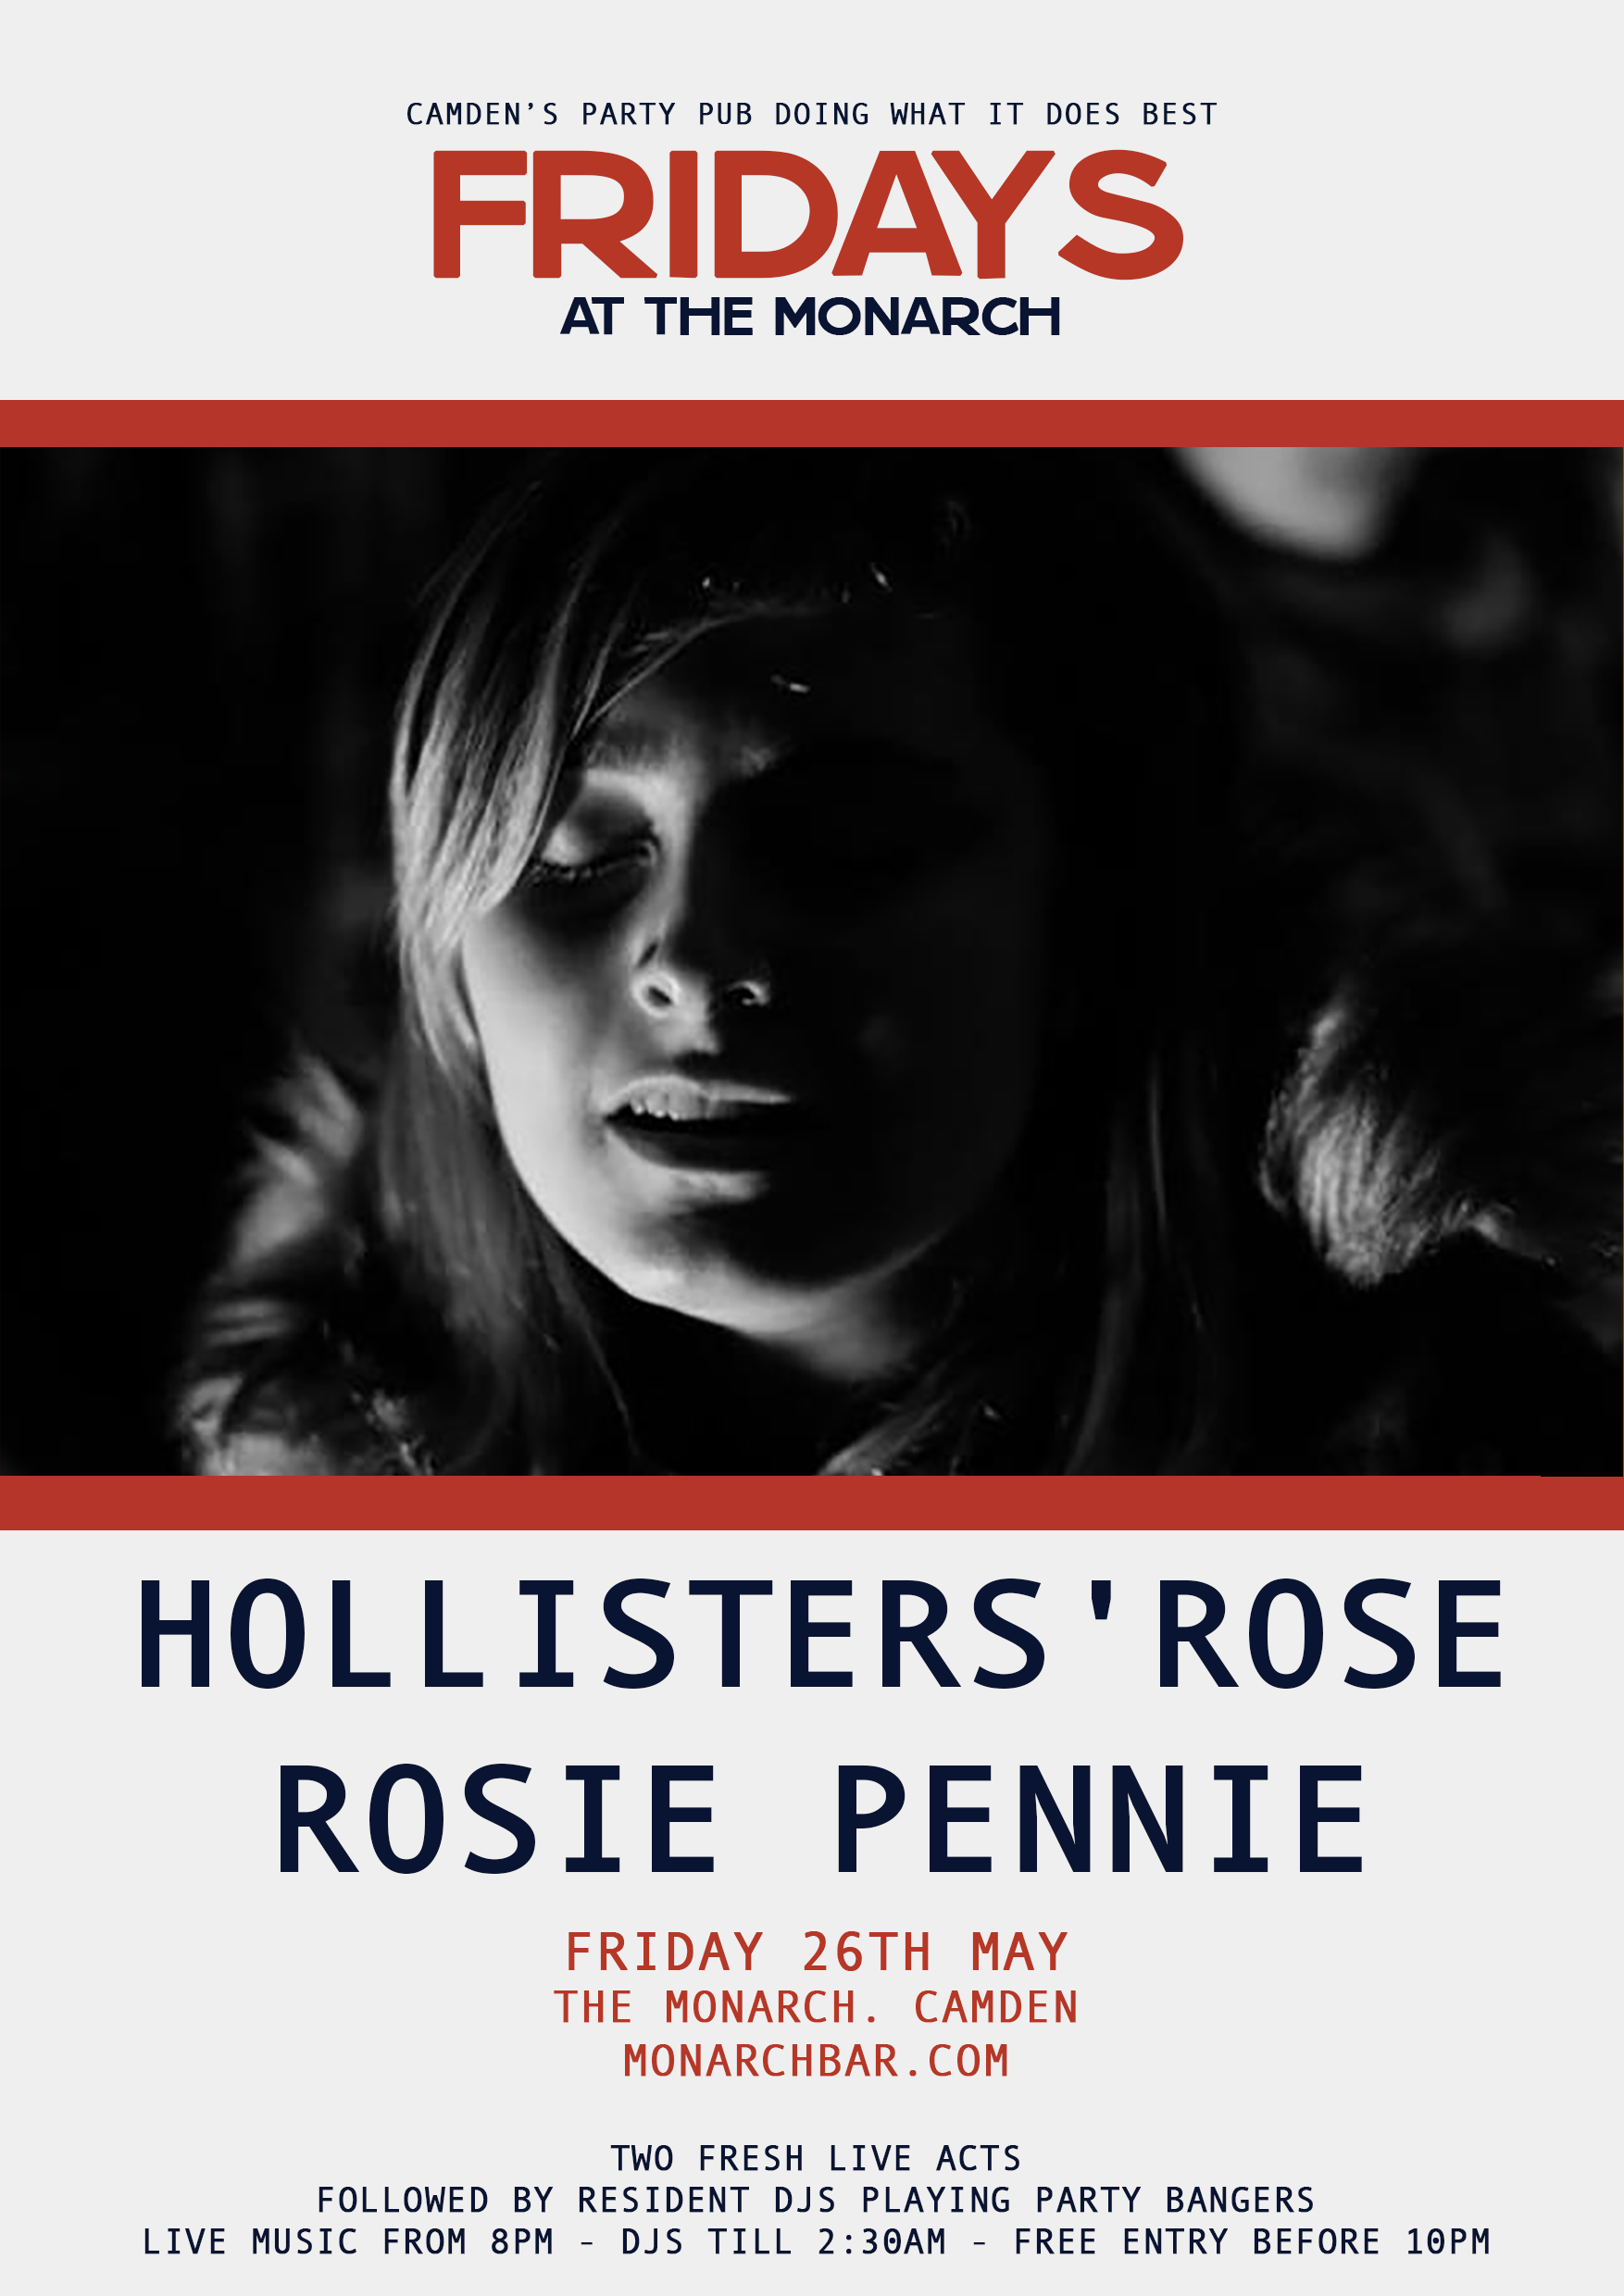 HOLLISTERS ROSE